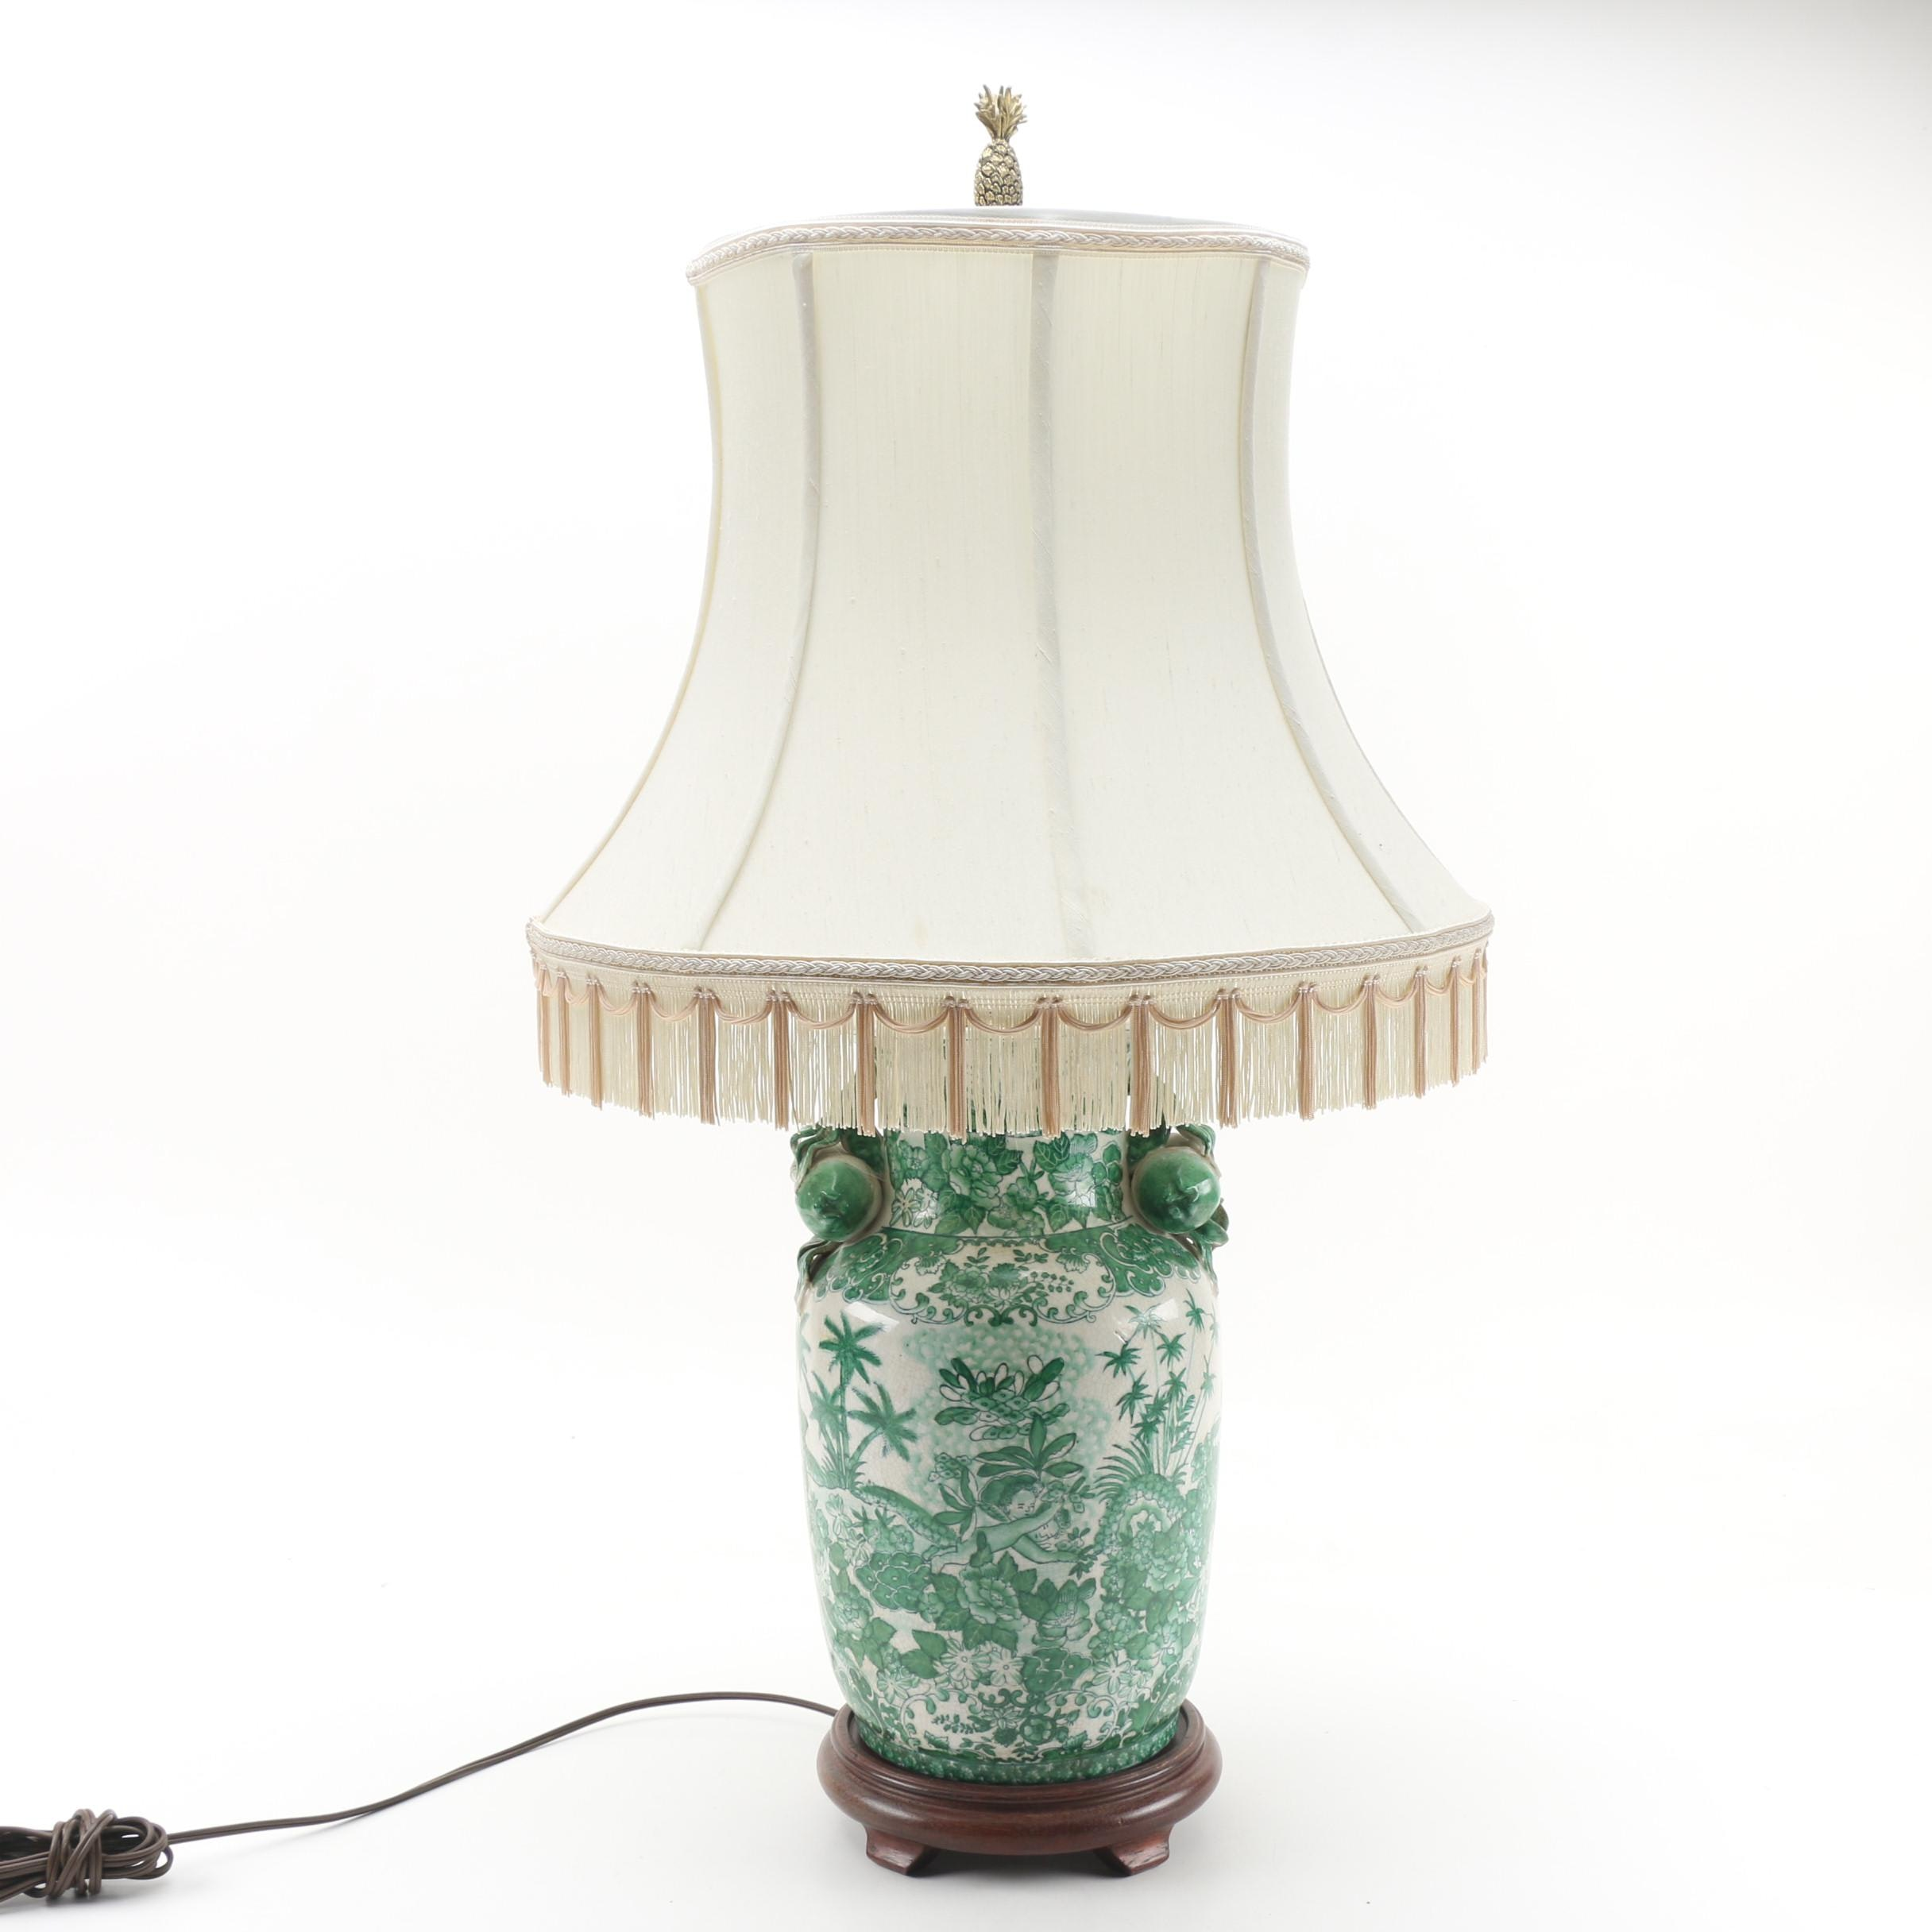 Repurposed Ceramic Vase Table Lamp with Shade and Pineapple Finial